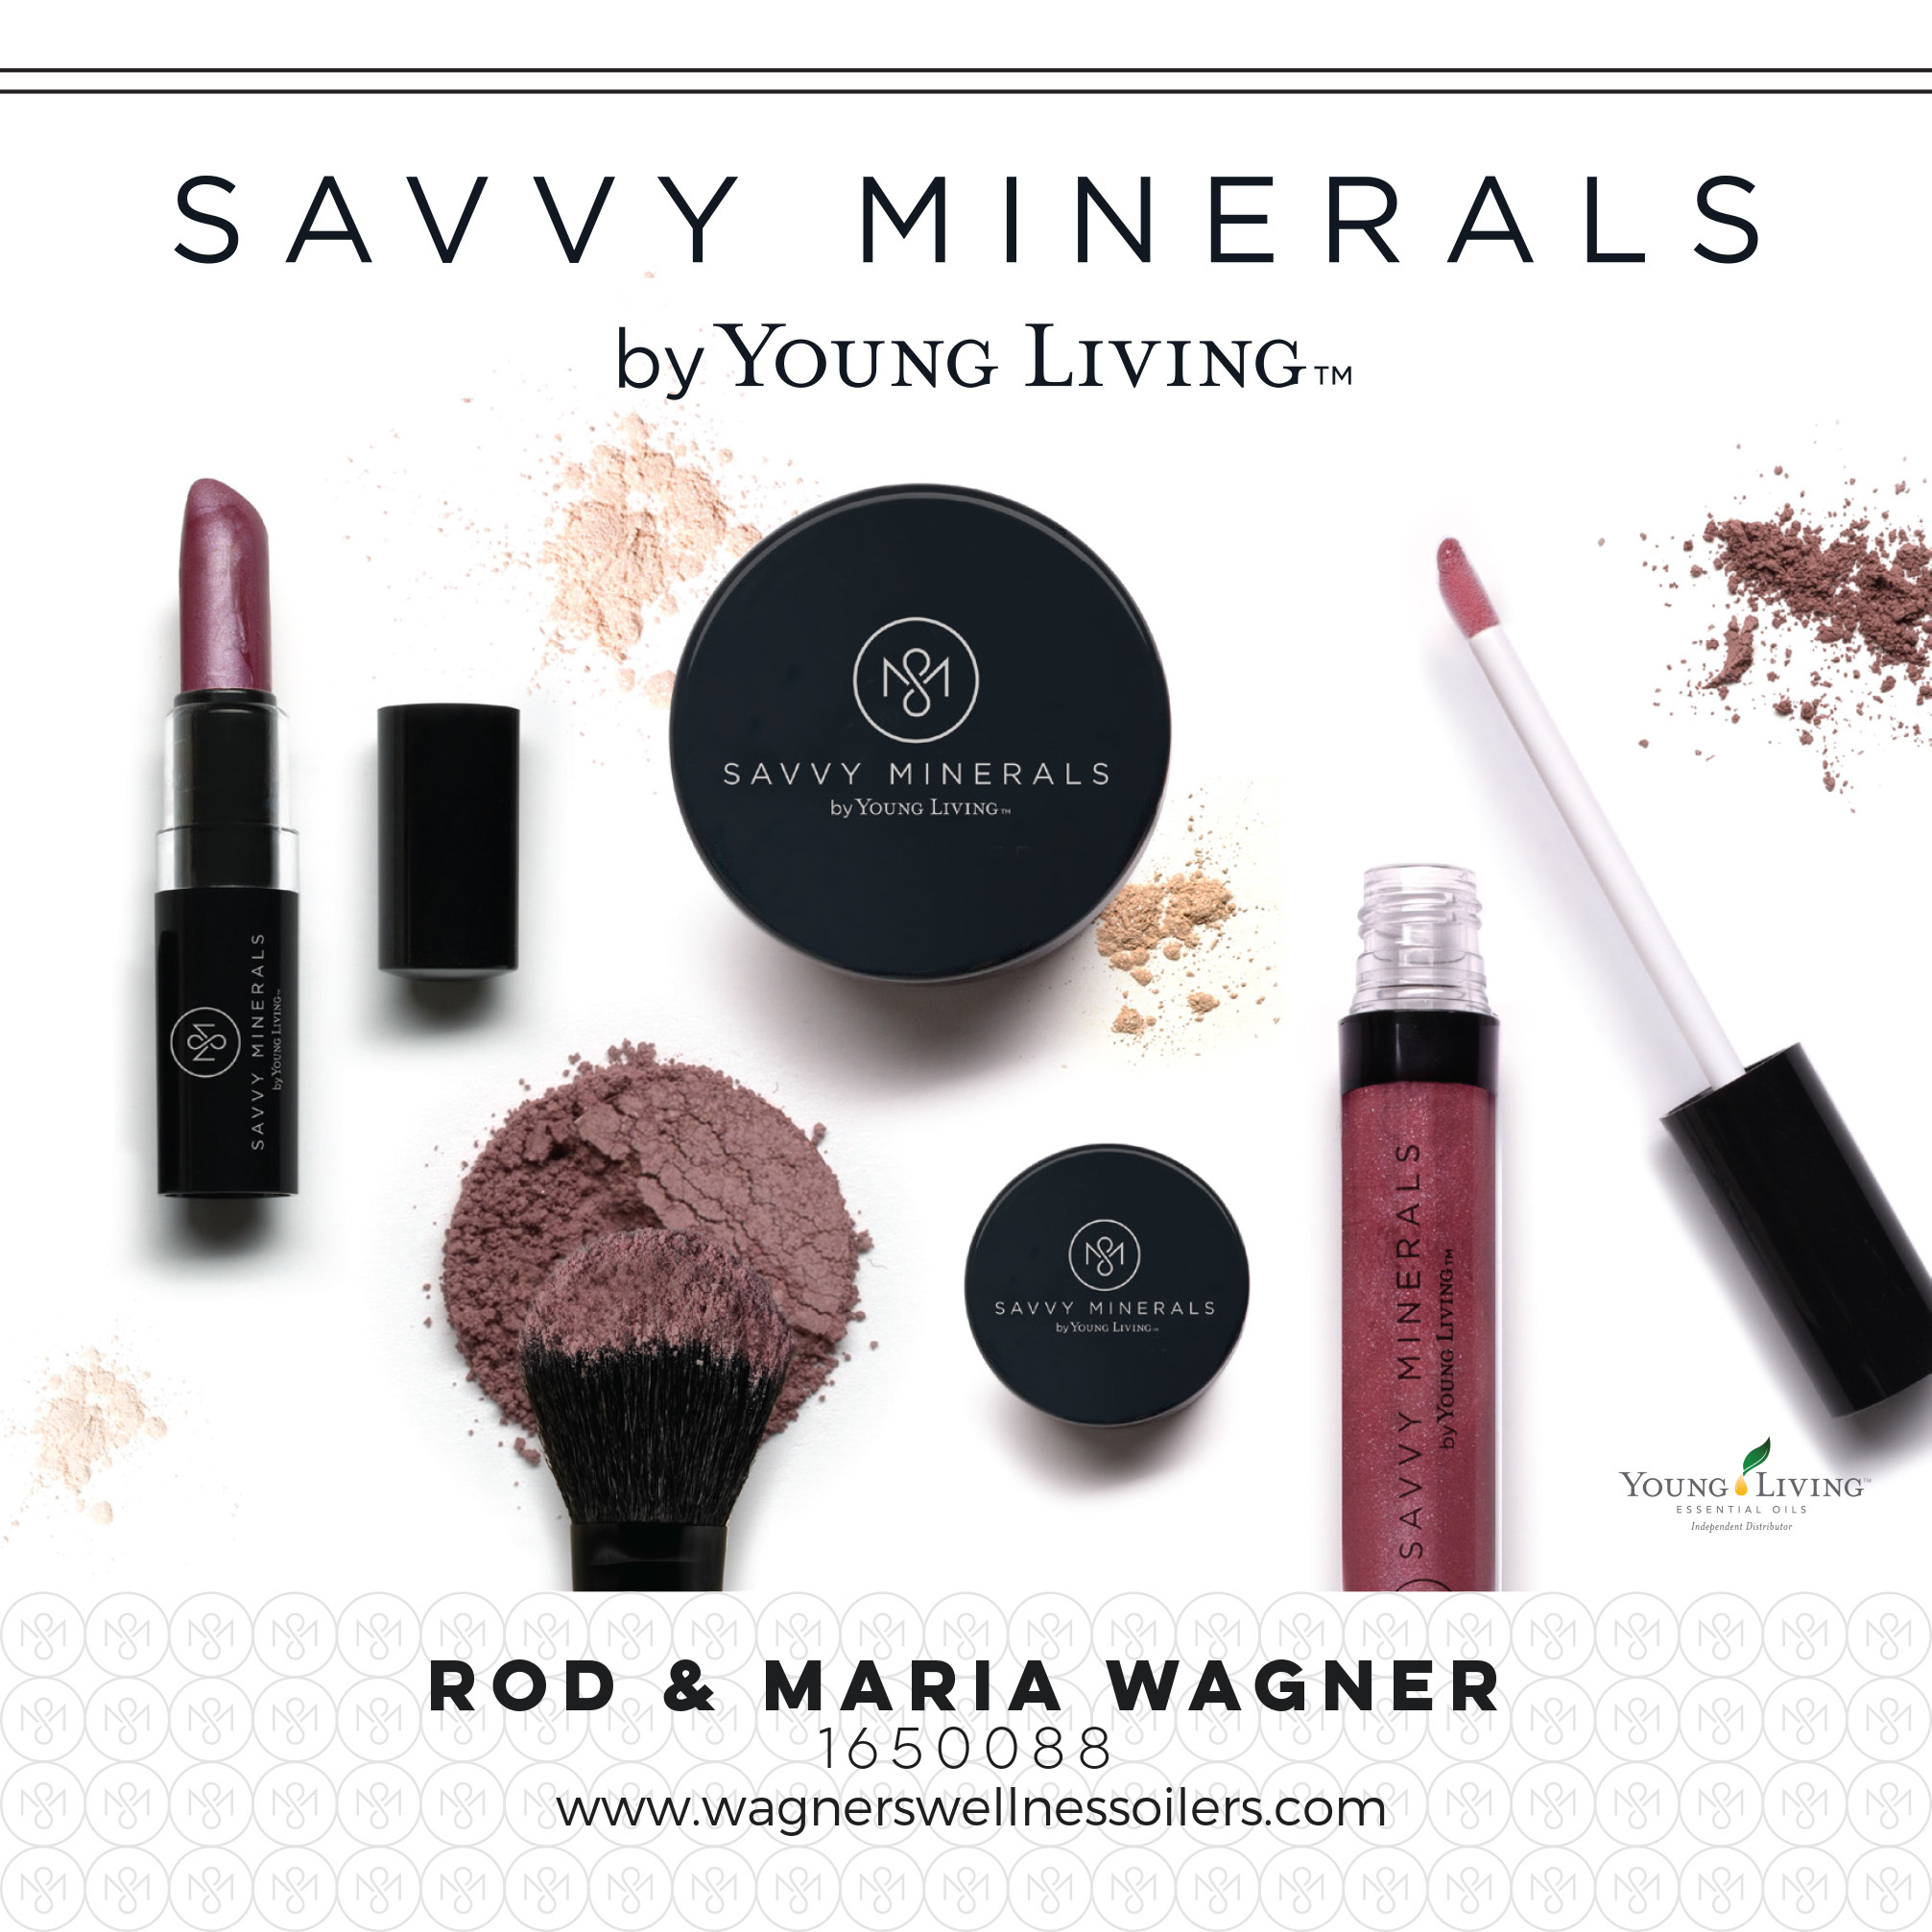 Wagner Wellness savvy minerals01 jpg fit 2013 2013 ssl 1